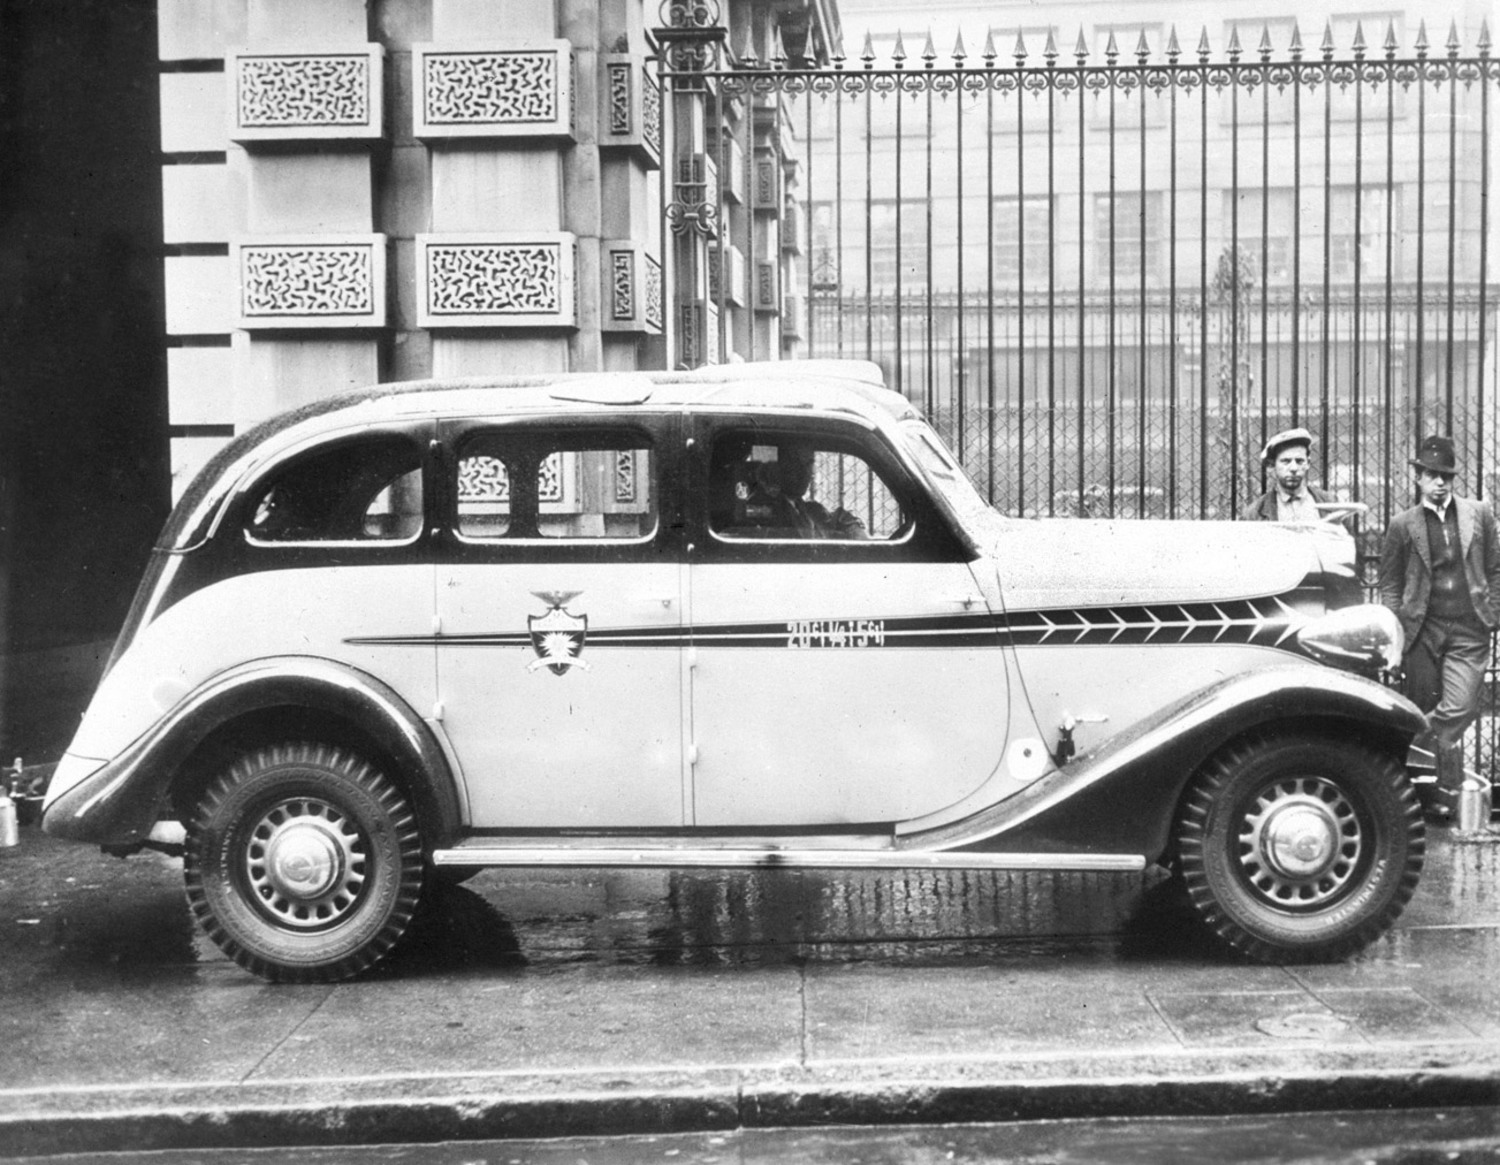 A new stream-lined taxi-cab in New York City in 1934. The new vehicle was roomier and more comfortable for passengers than earlier versions.